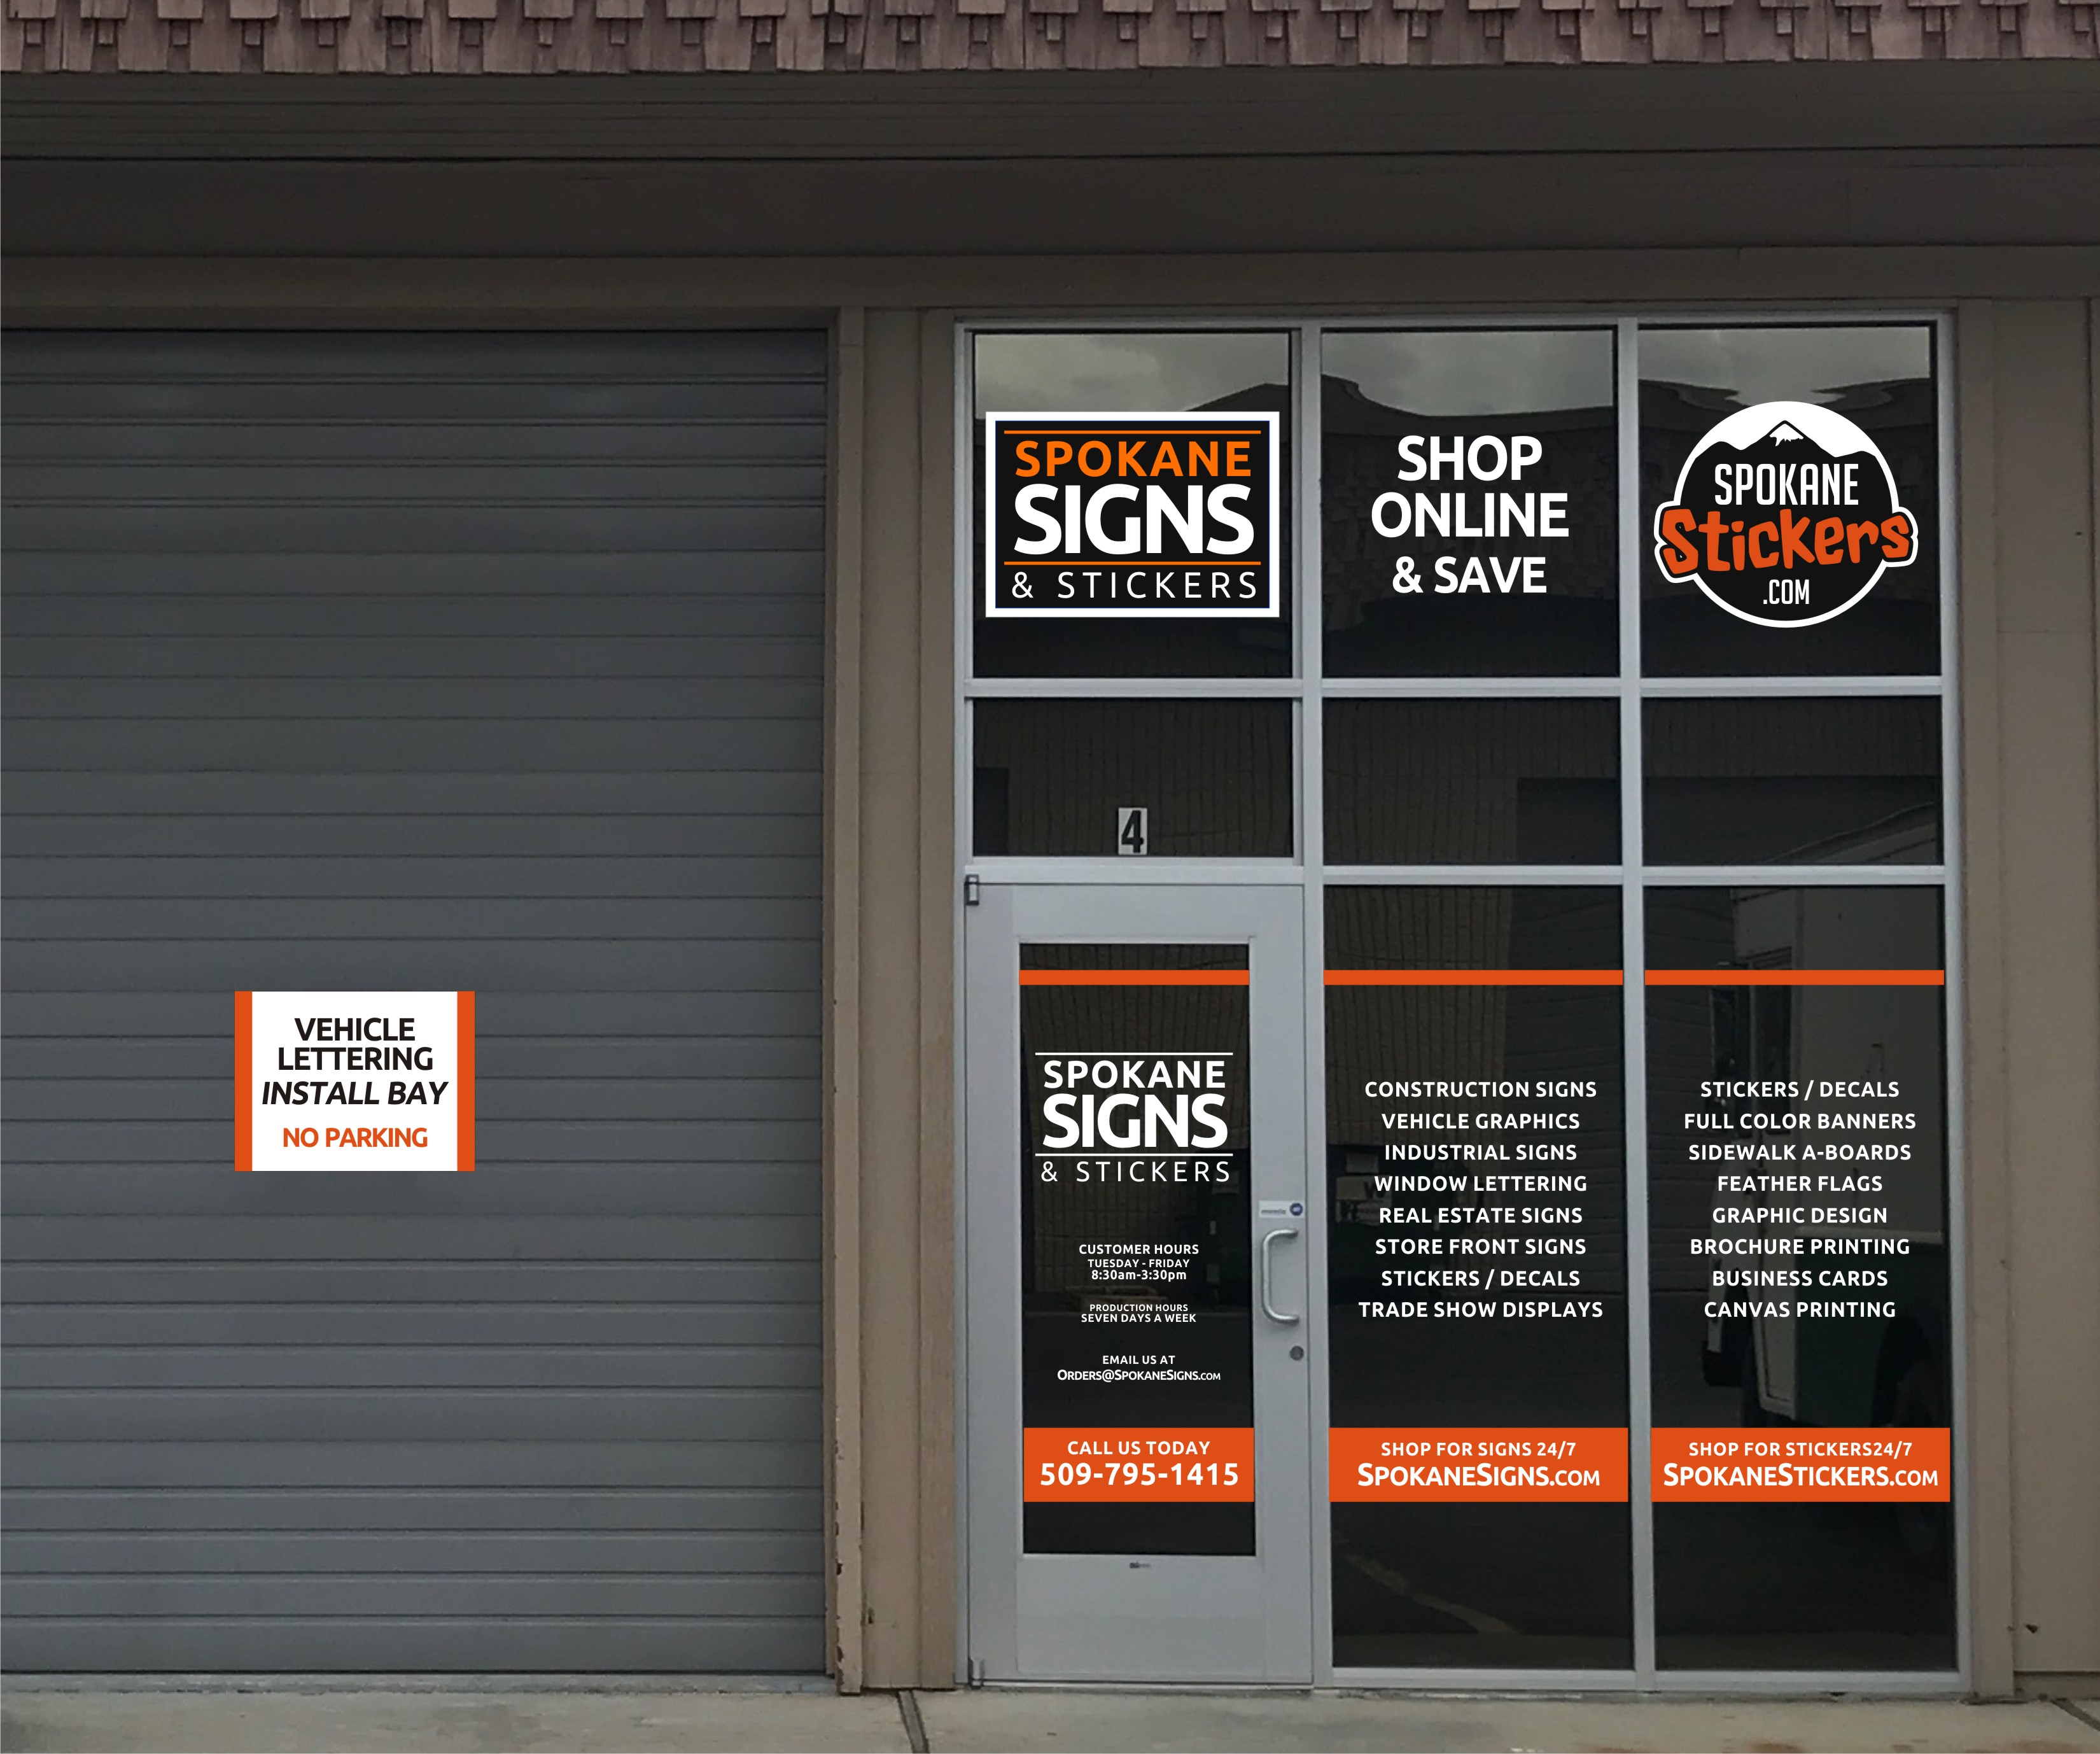 spokane signs & stickers retail storefront location